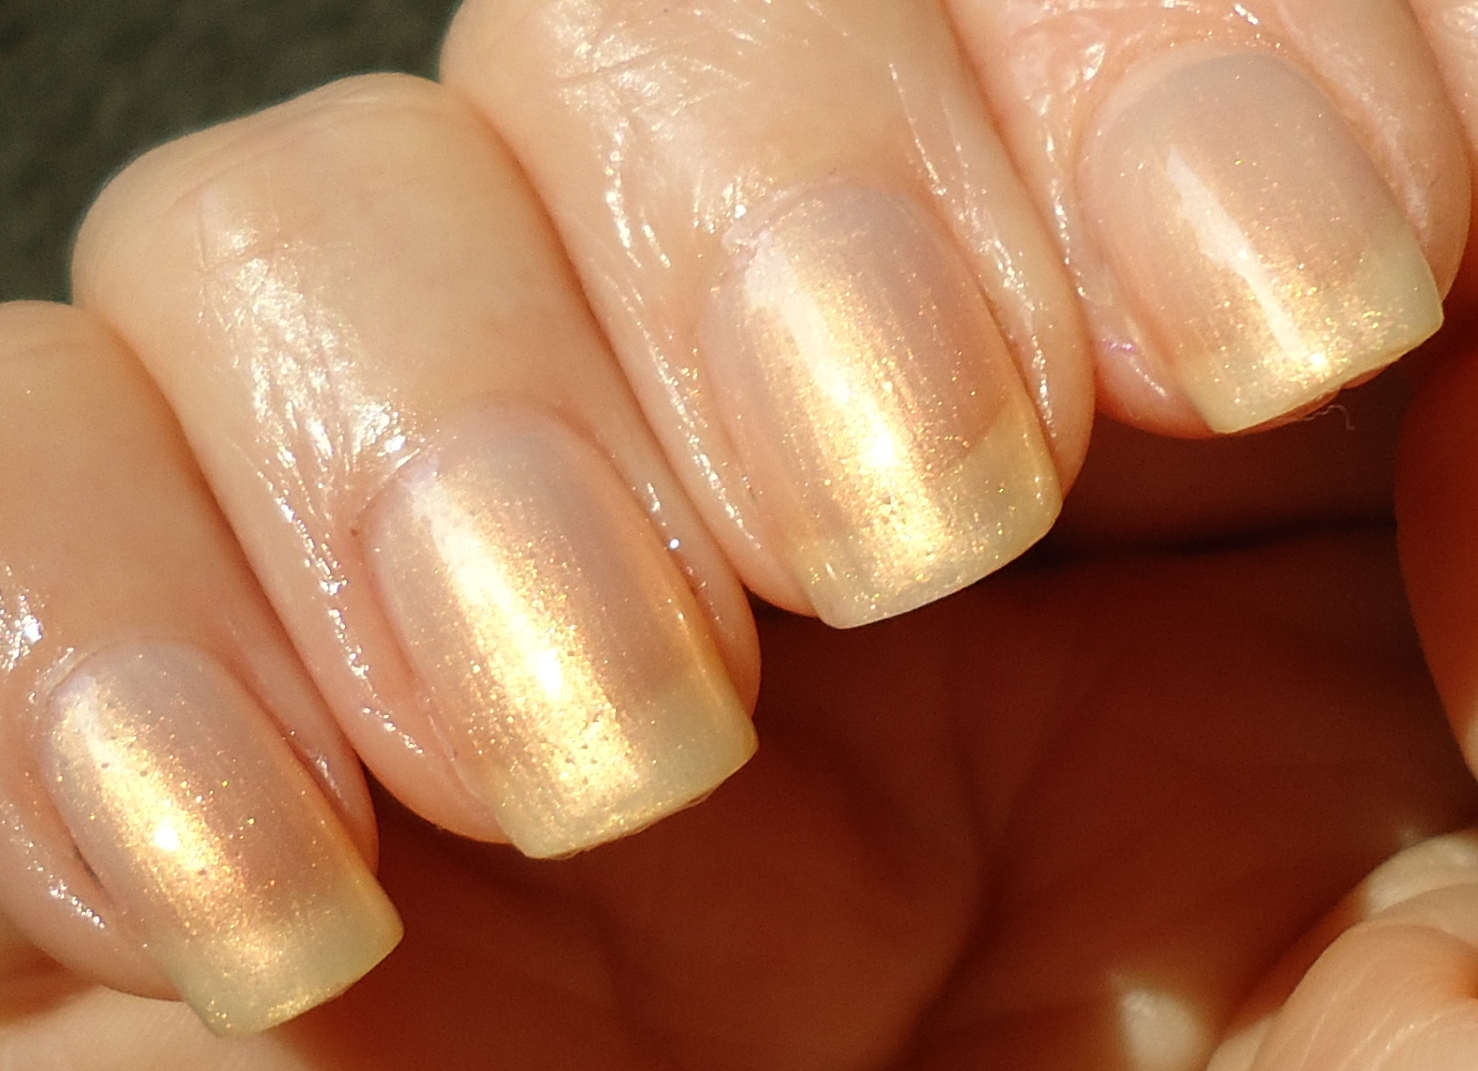 Making up 4 my age: An old OPI: Kiss The Bride